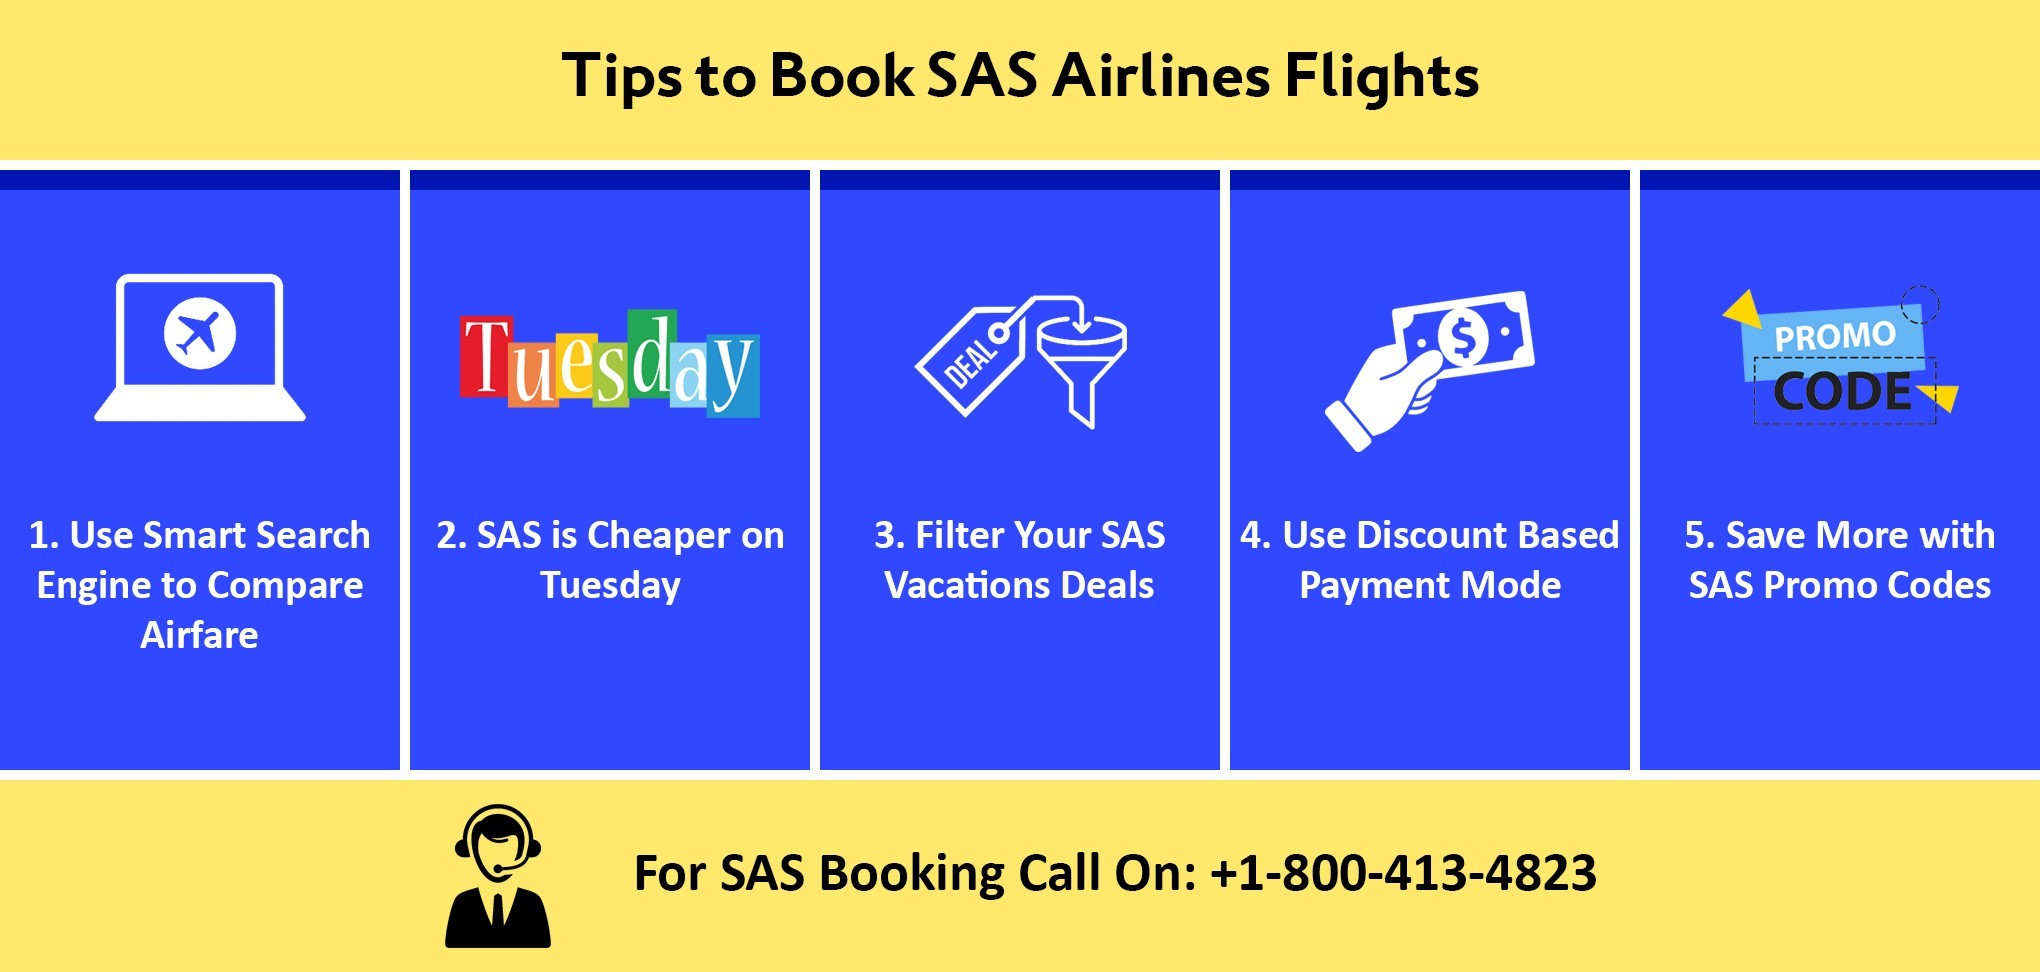 Tips to Book SAS Airlines Flights